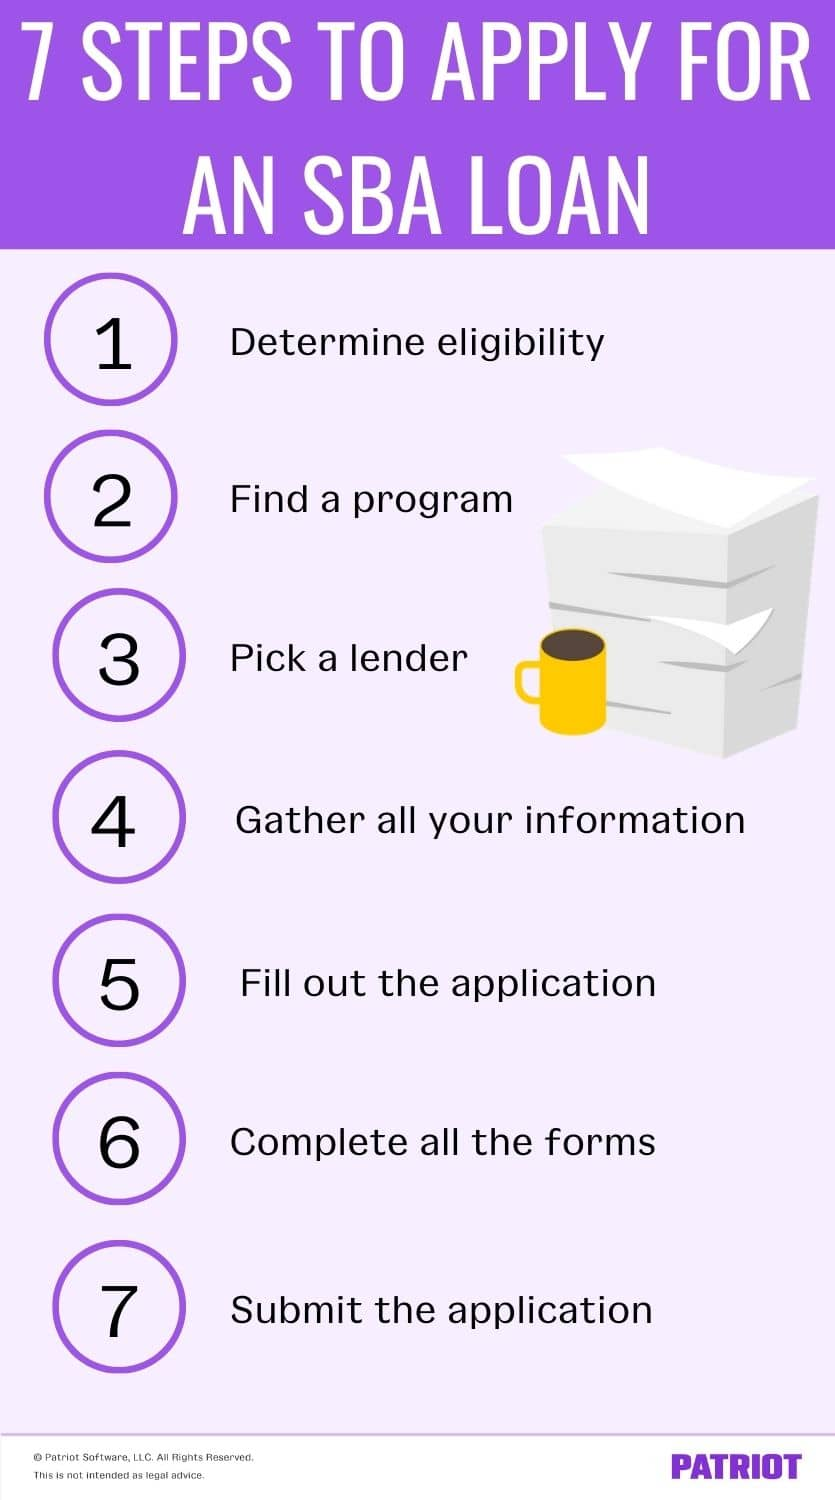 7 Steps to Apply for an SBA Loan. Determine eligibility, find a program, pick a lender, gather all your information, fill out the application, complete all the forms, and submit the application.